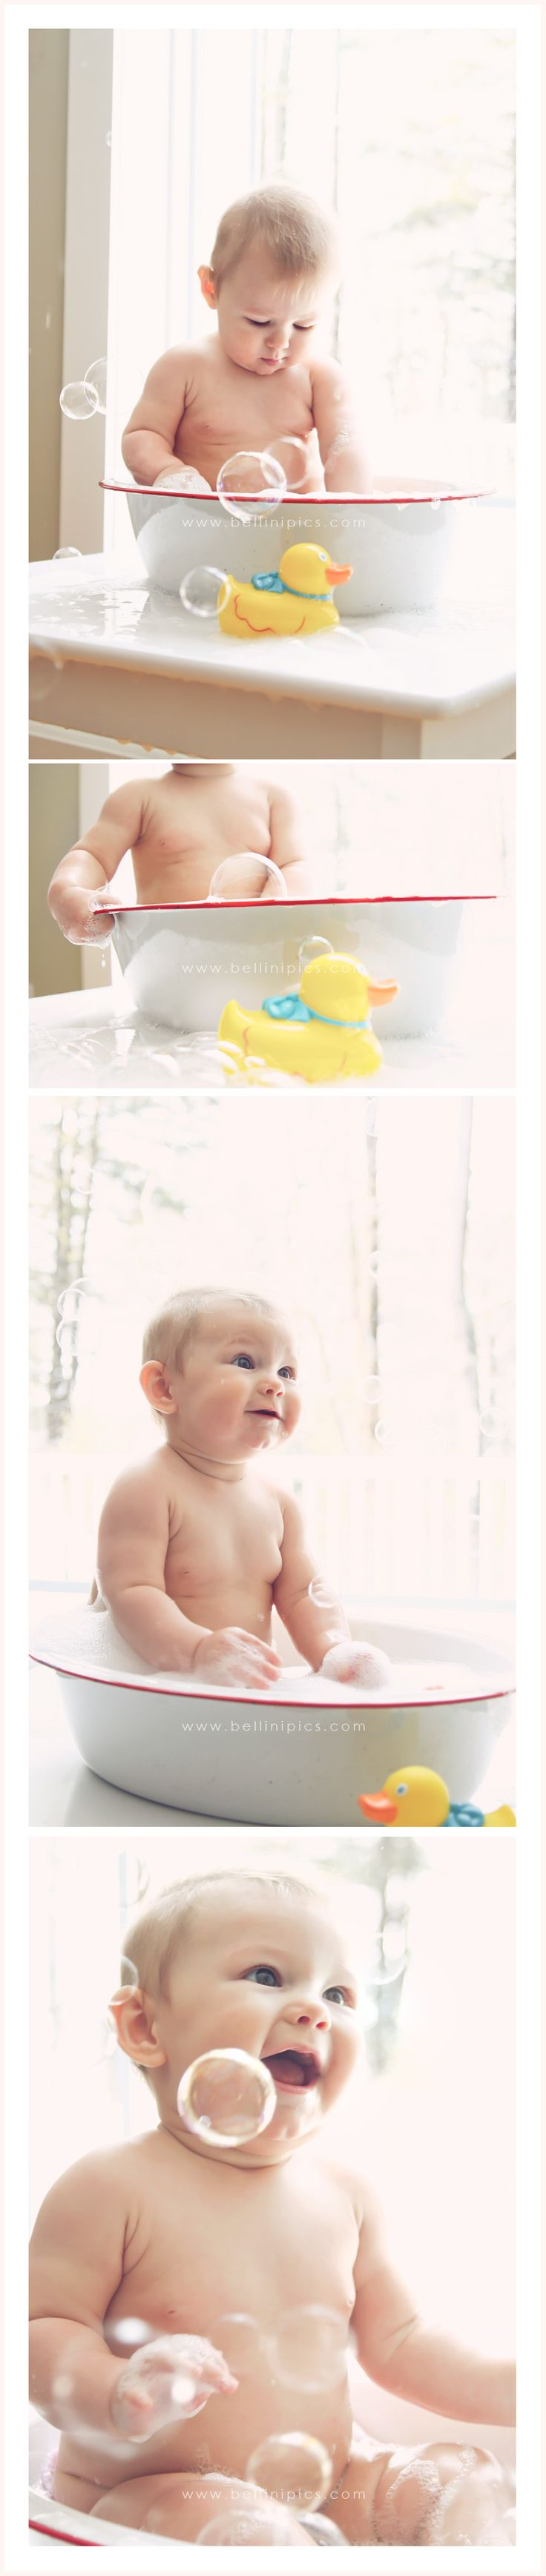 baby in a bath tub in the window with bubbles photography pinterest the. Black Bedroom Furniture Sets. Home Design Ideas